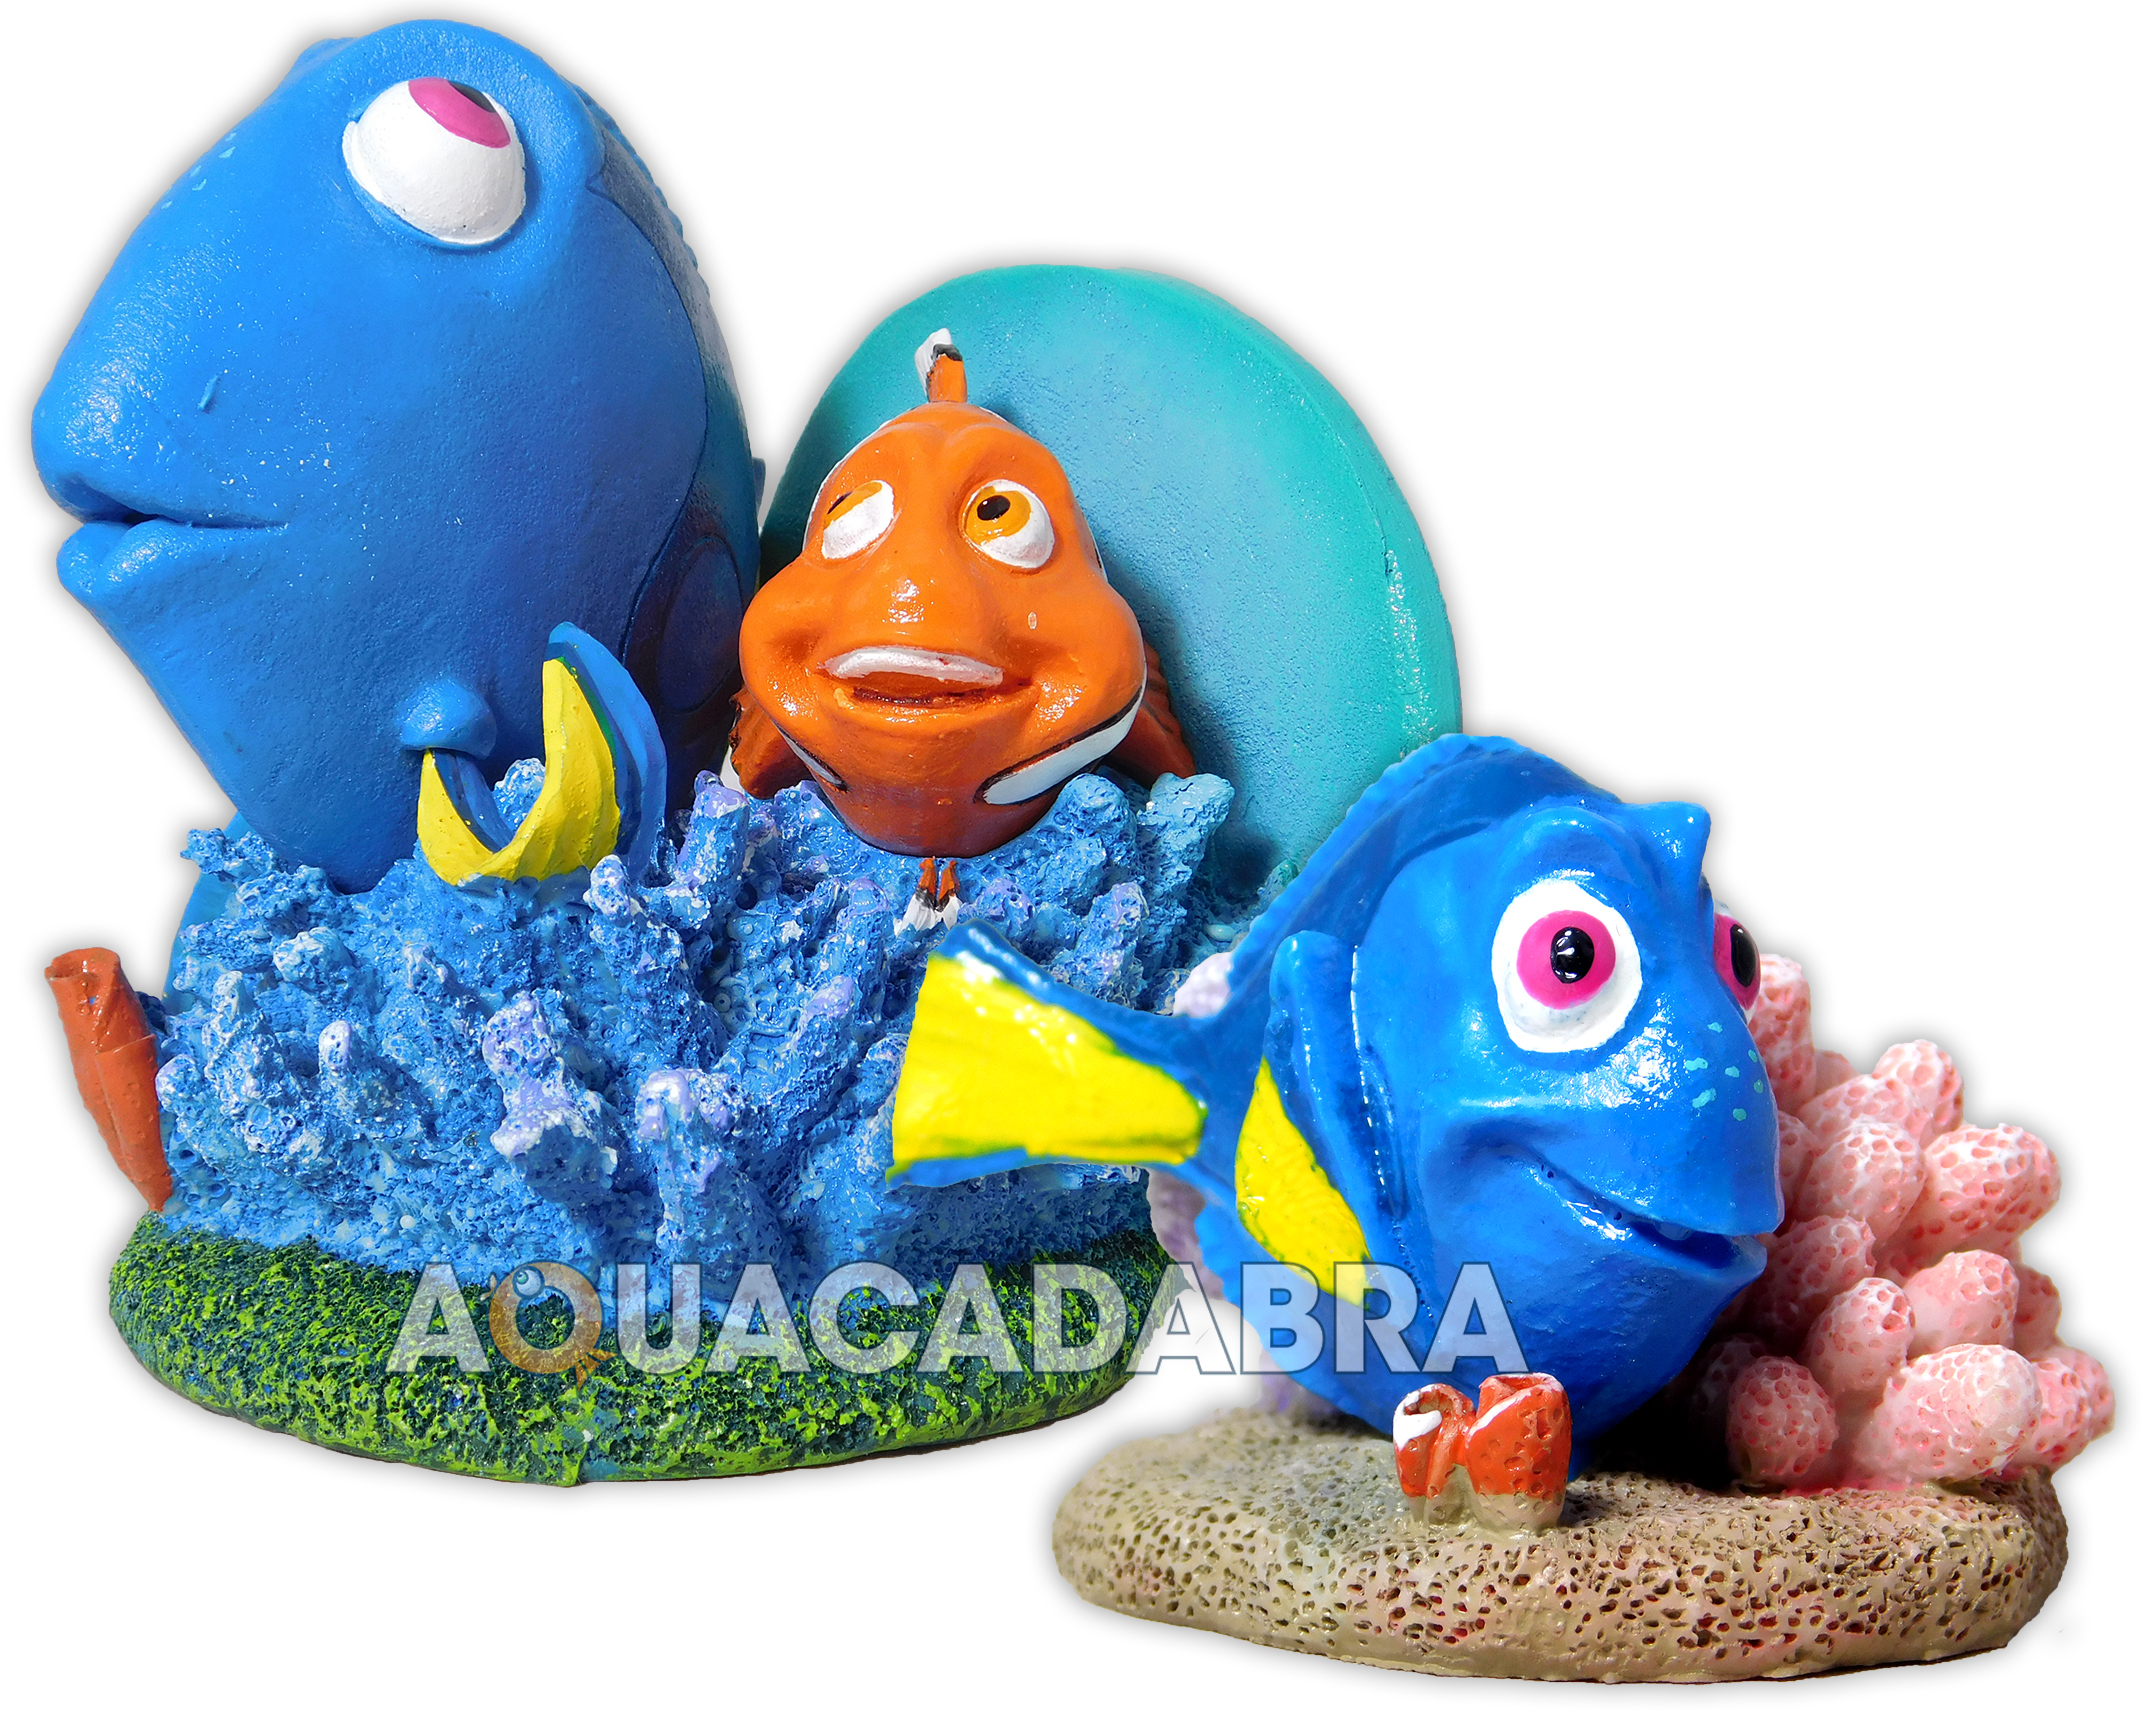 Fish in nemo aquarium - Finding Dory Aquarium Ornaments Marlin Nemo Disney Pixar Fish Tank Decoration